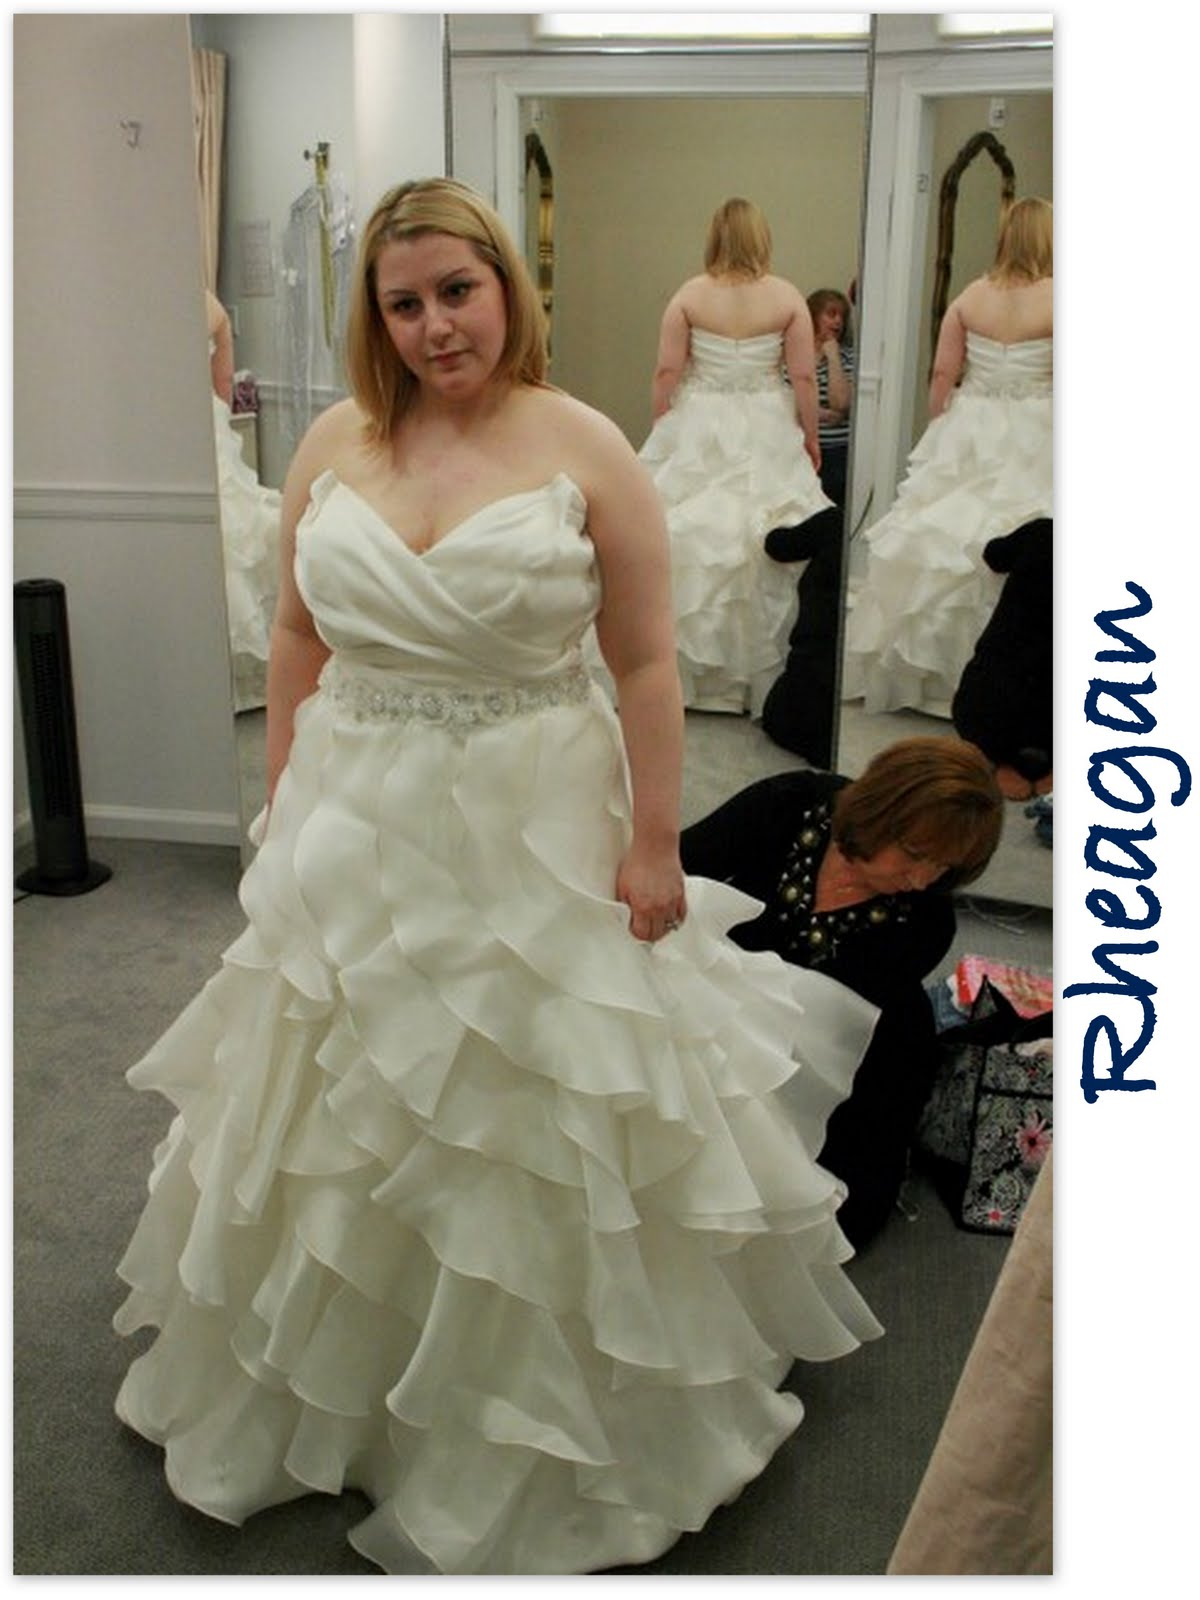 Plus Size Wedding Say Yes To The Dress Big Bliss Finale Giveaway Garnerstyle